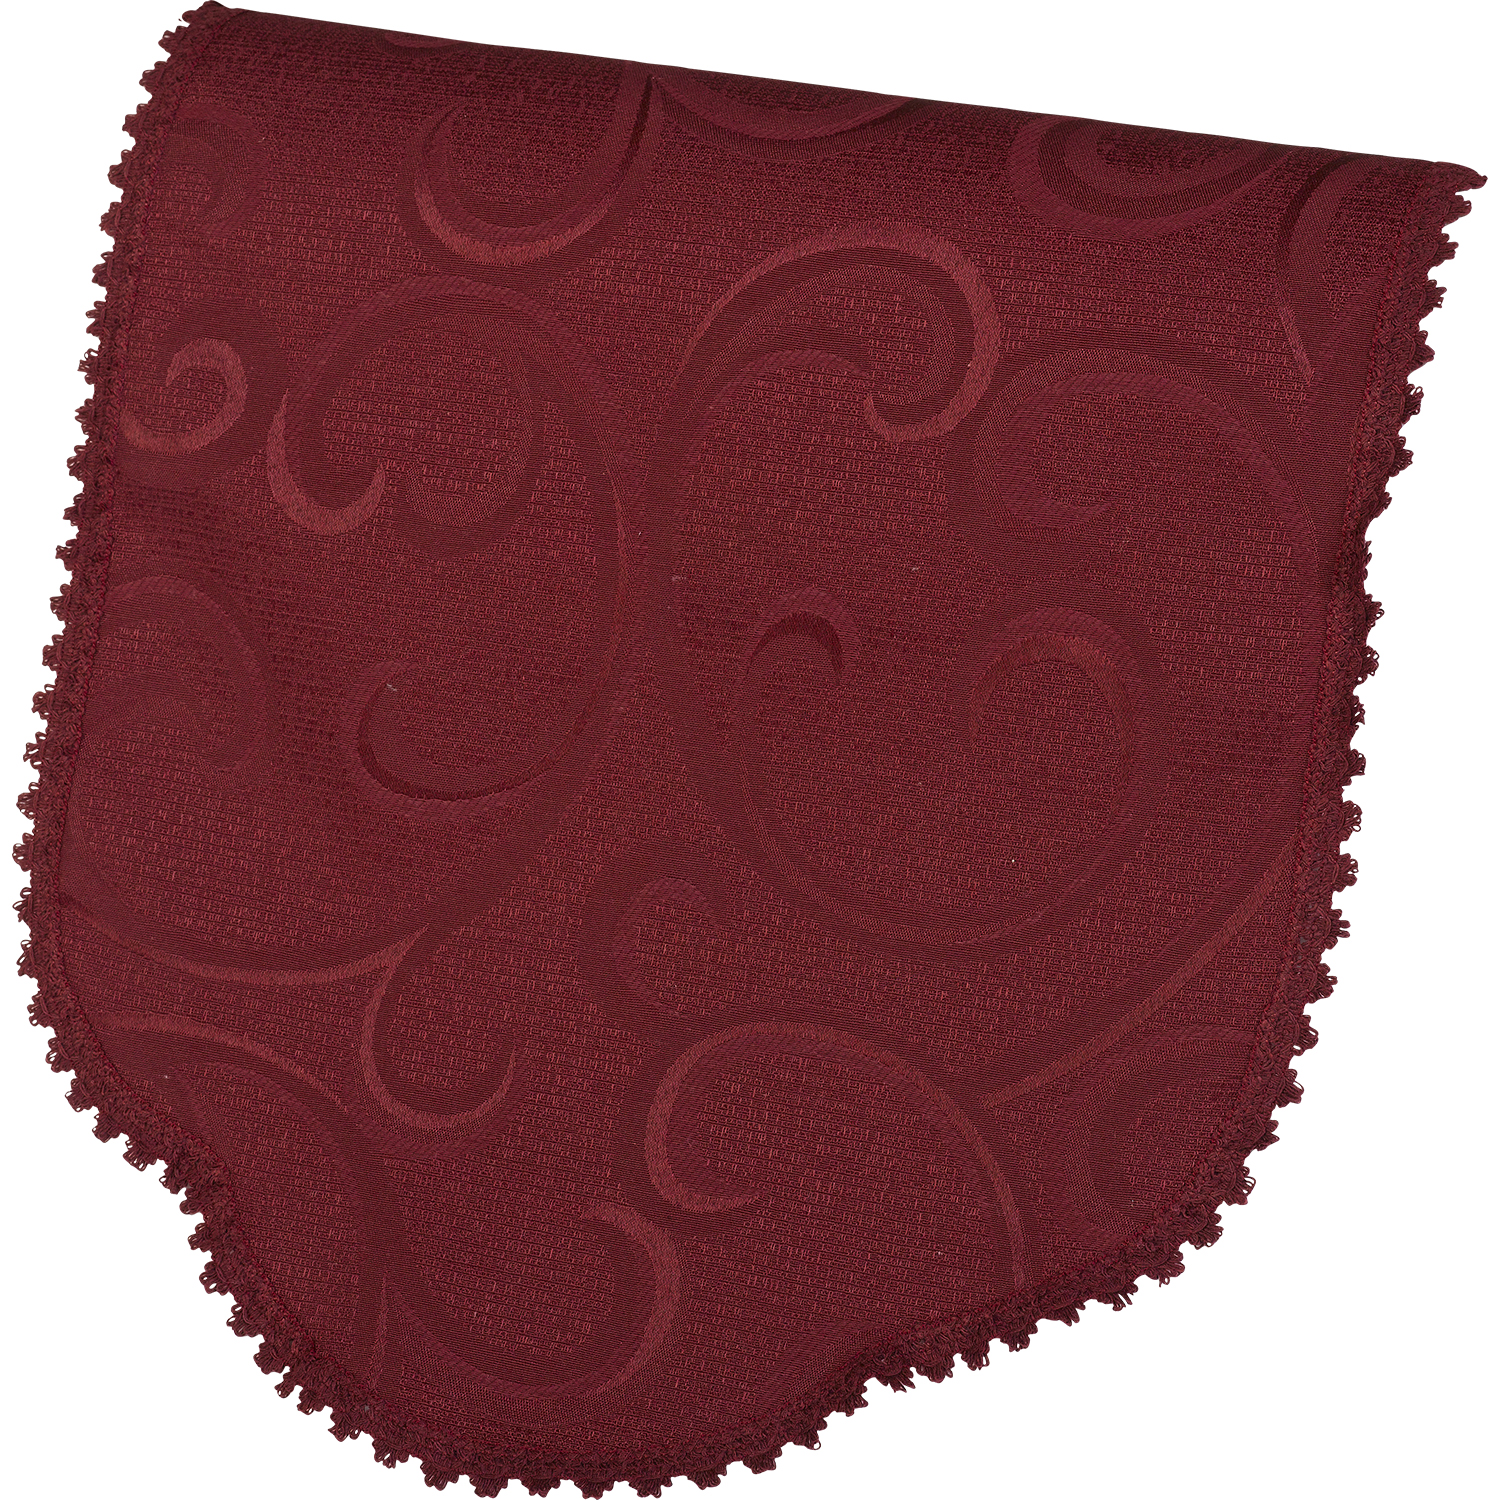 Antimacassar-Single-Chair-Back-Swirl-Pattern-Lace-Trim-Furniture-Cover    Single Swirl Pattern